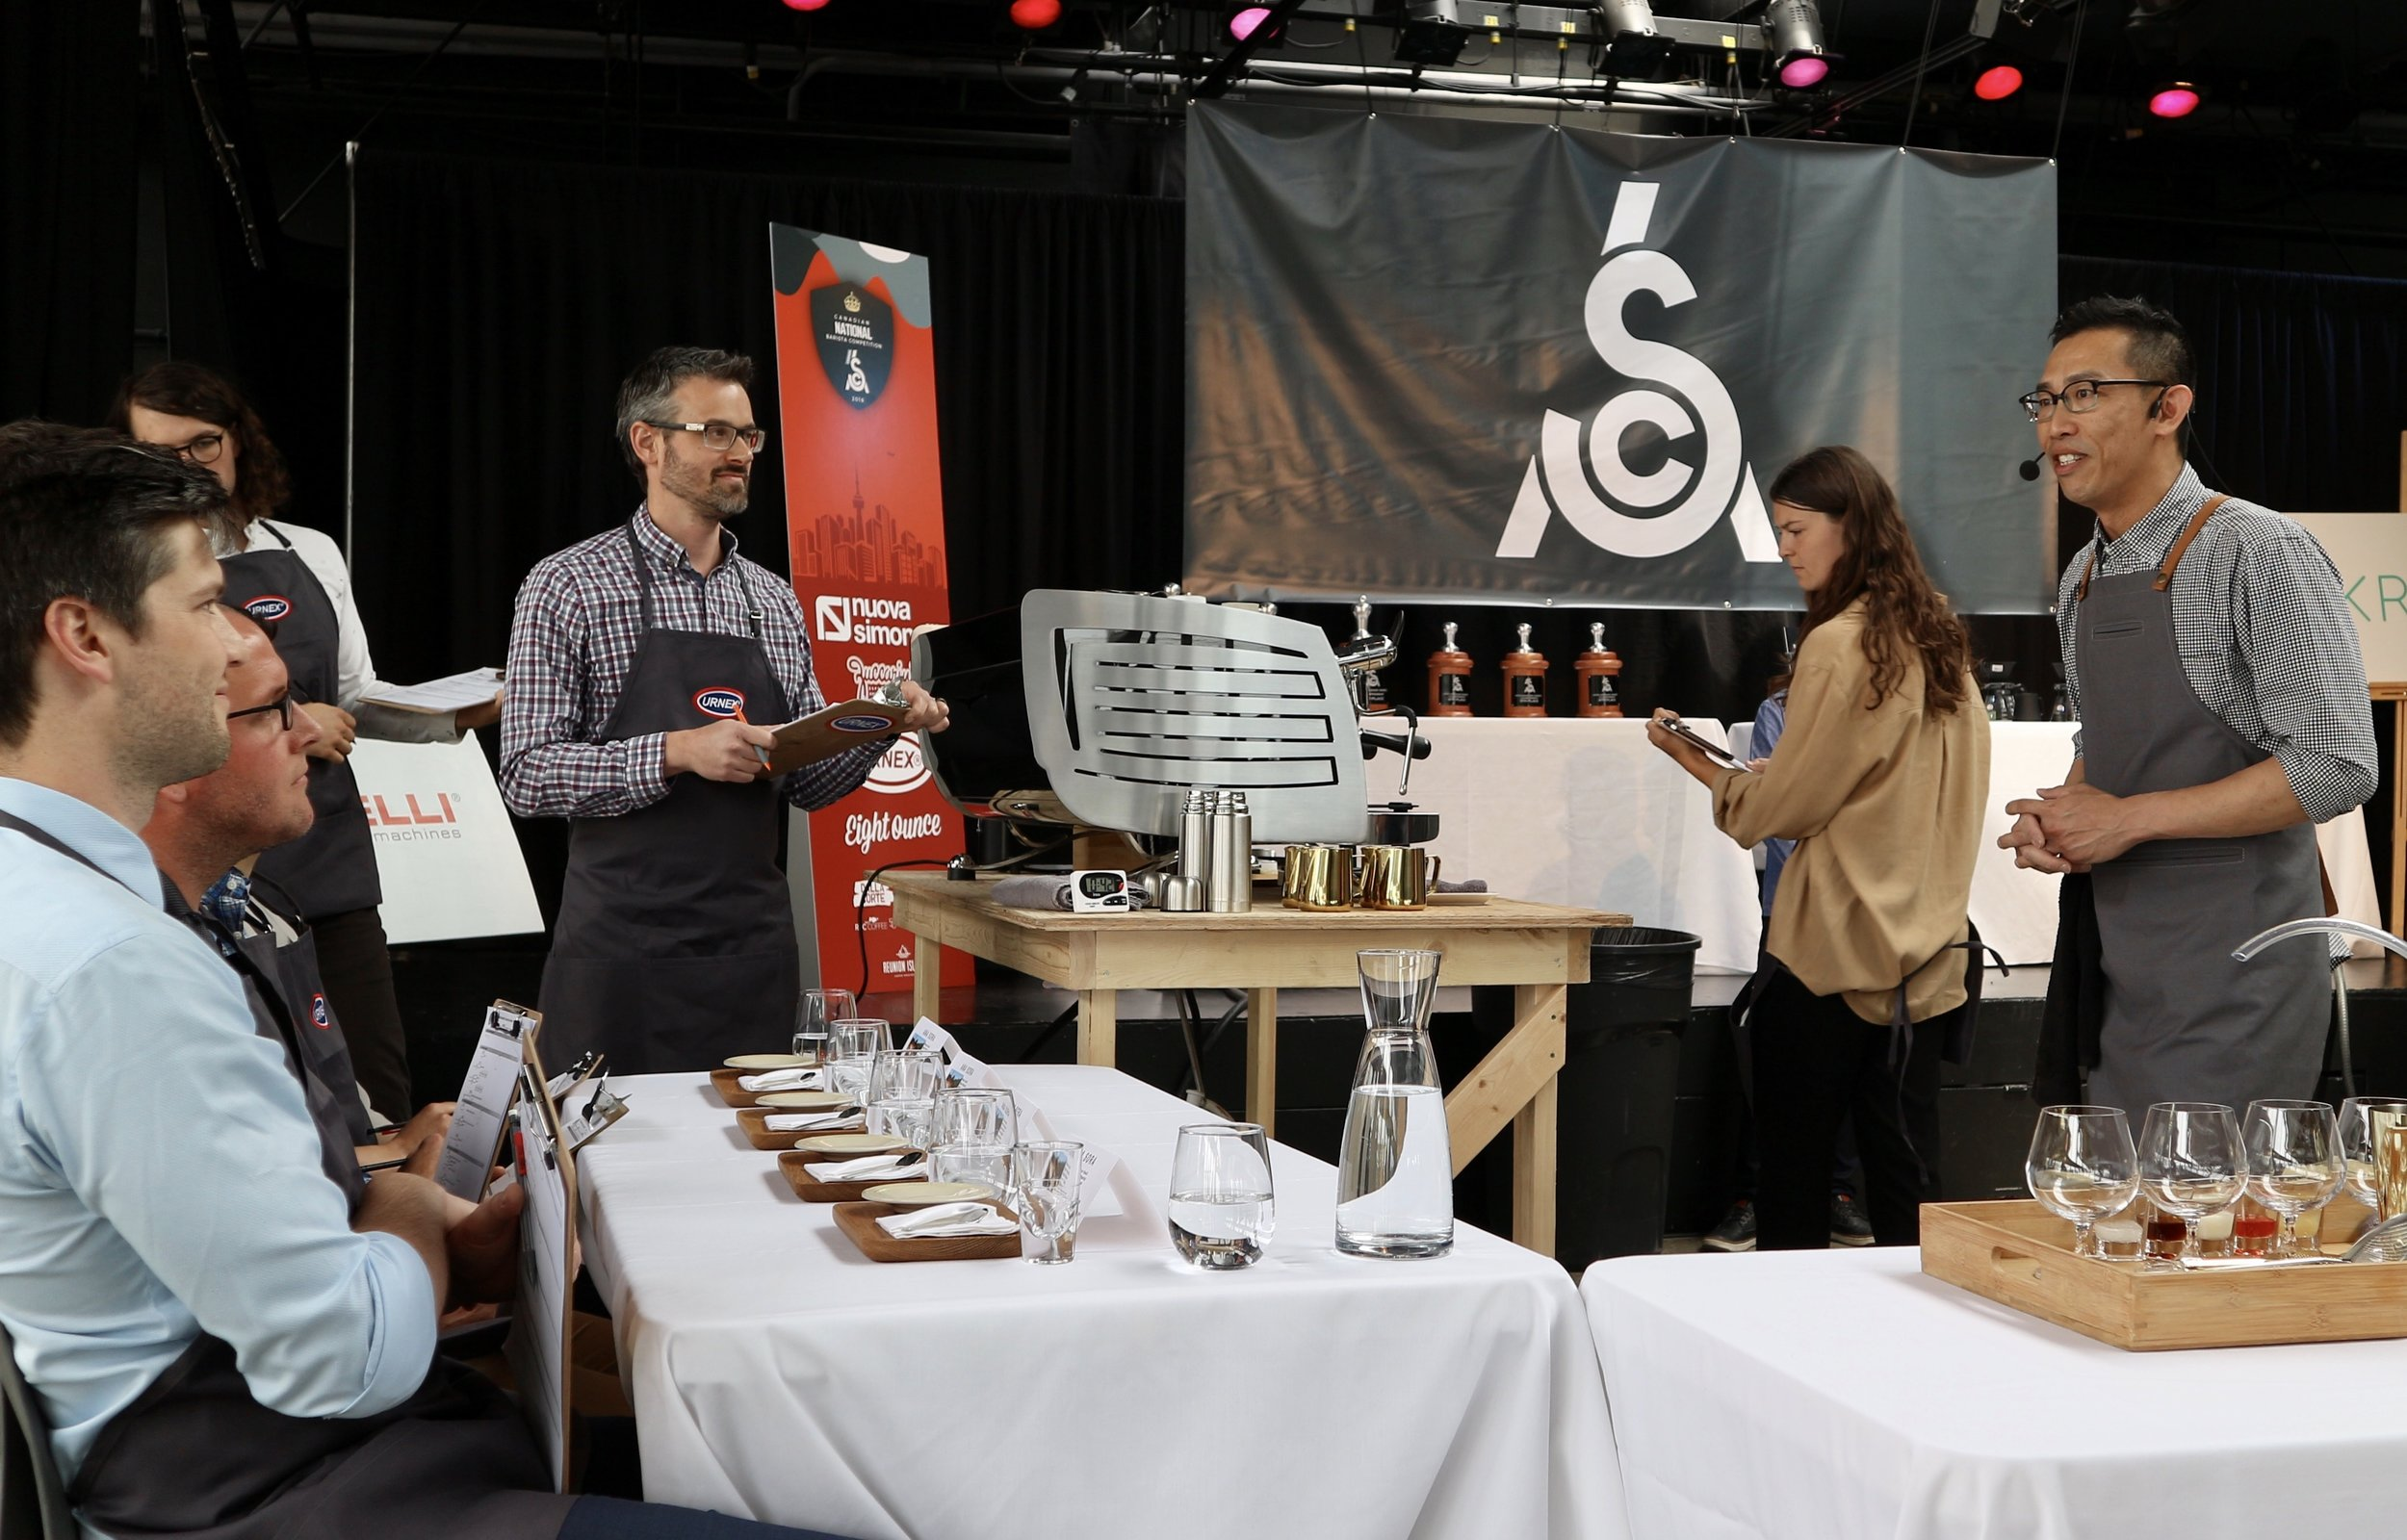 Yadi competing for the first time at the 2018 Canadian National Barista Championship, placing 8th overall.